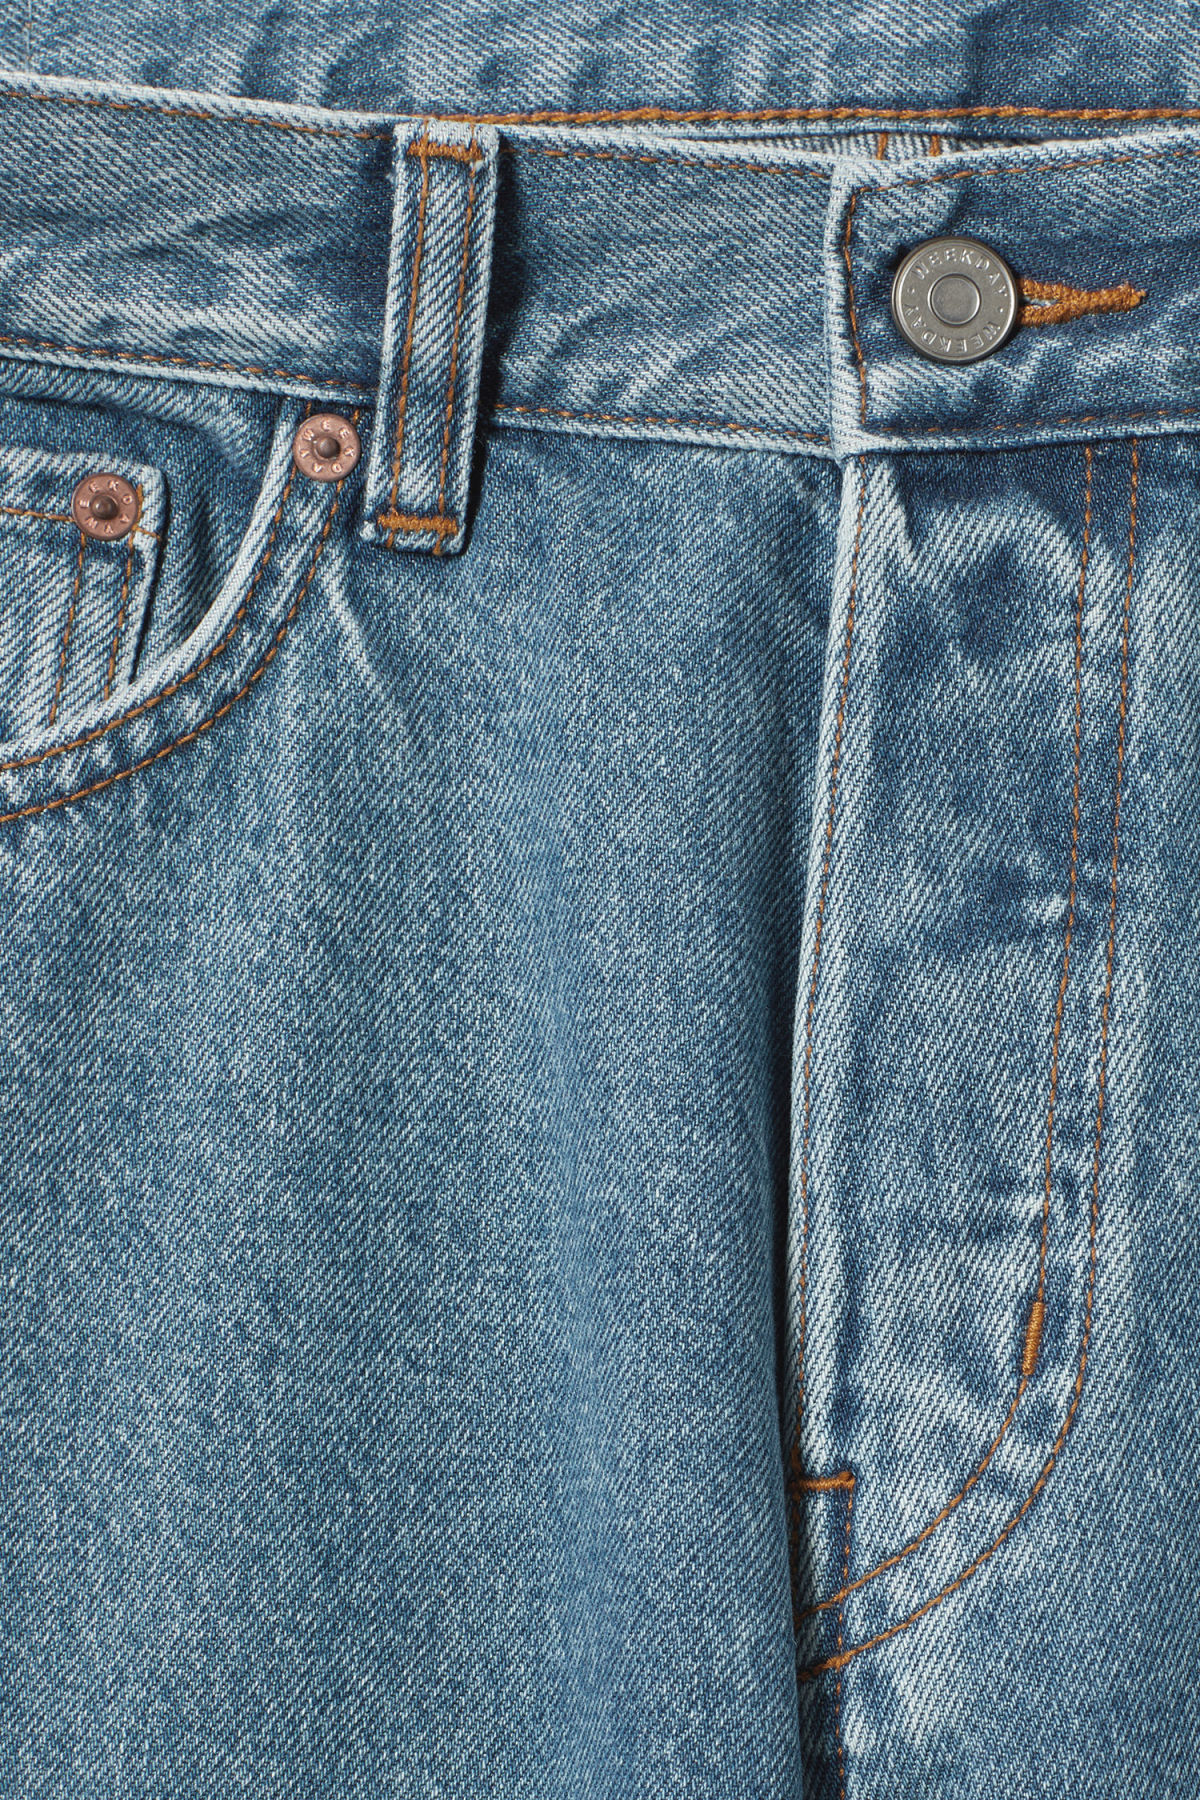 Detailed image of Weekday vacant arizon blue jeans in blue